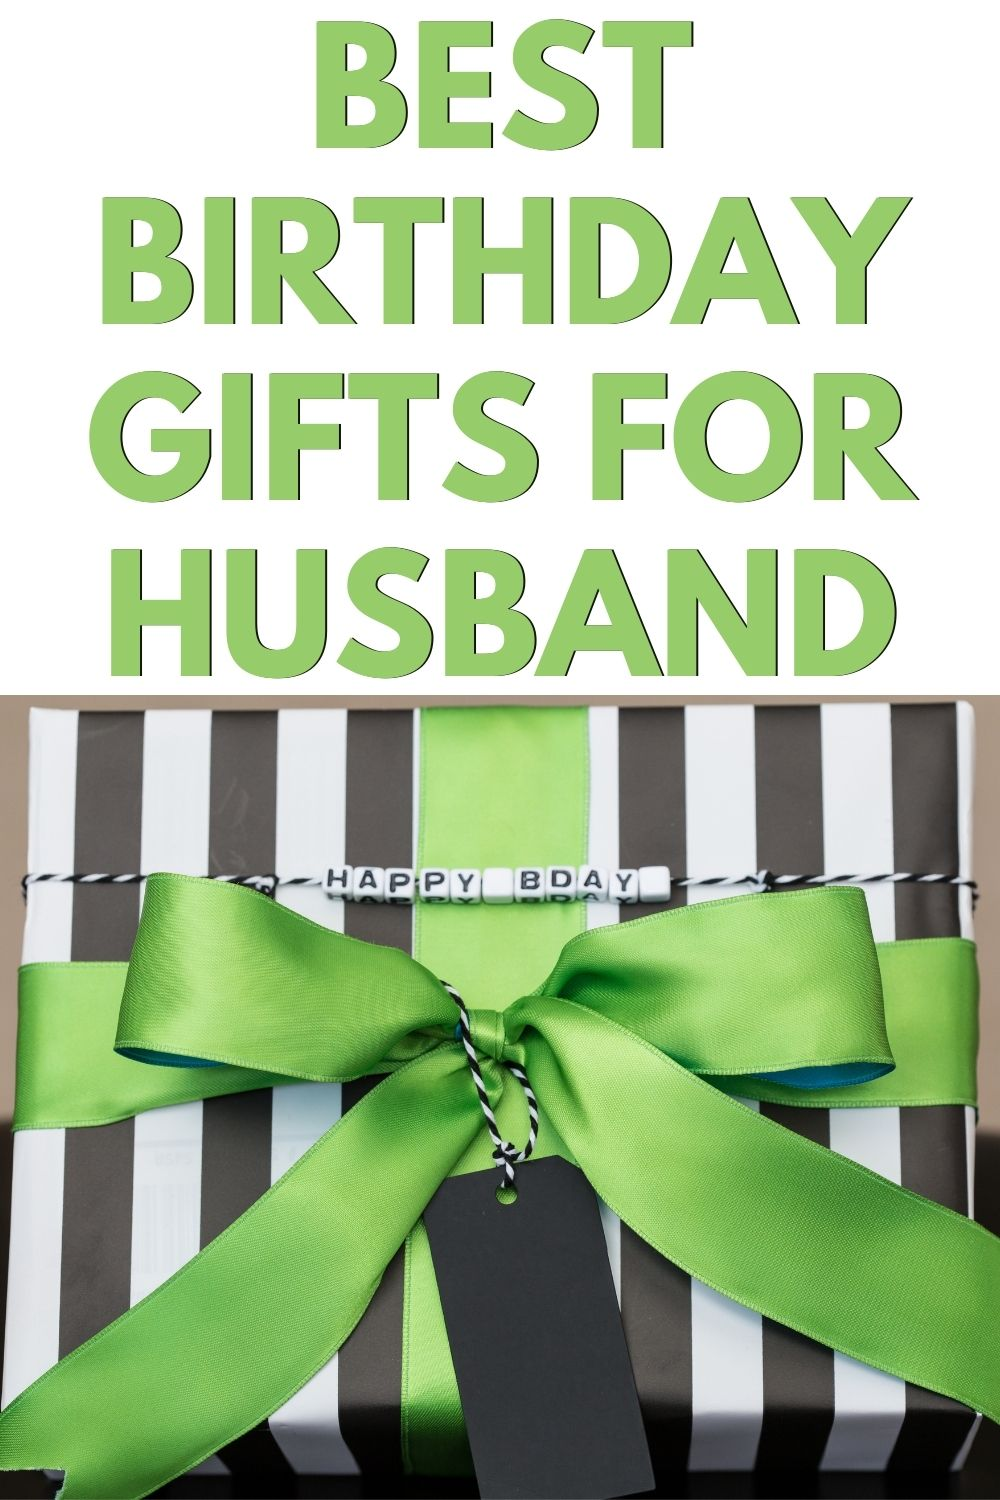 Best birthday gifts for husband